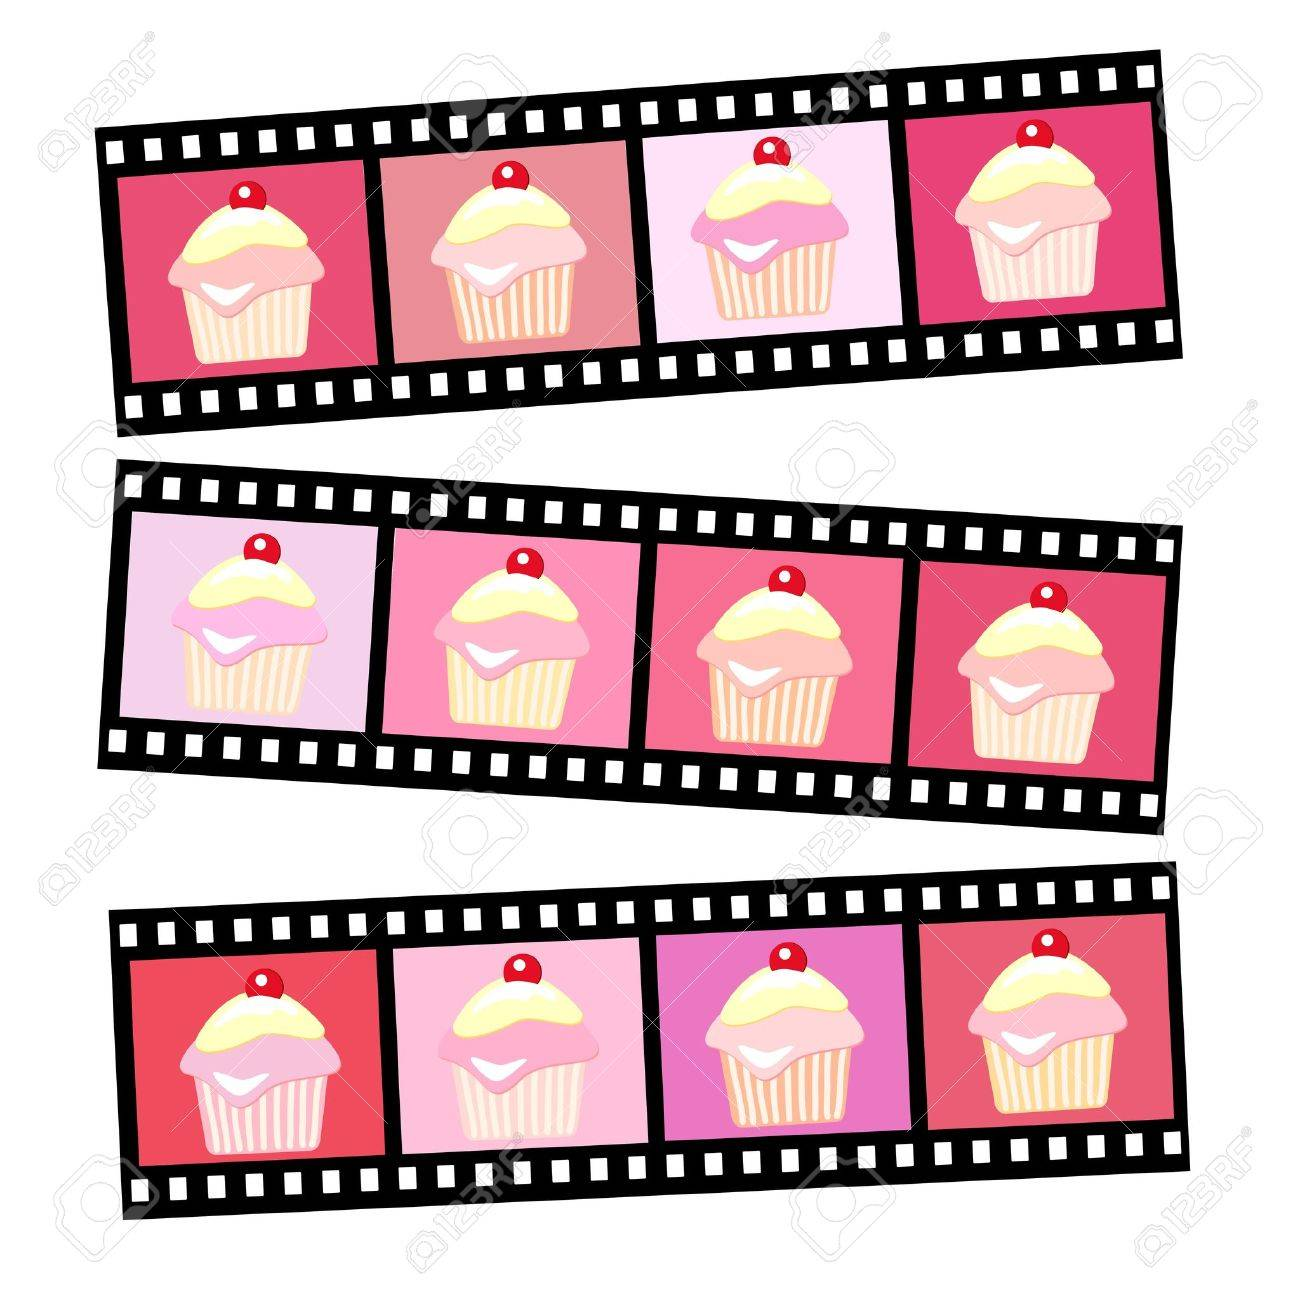 Photos of pink cherry cup cakes in various shades. EPS10 vector format. Stock Vector - 10631583